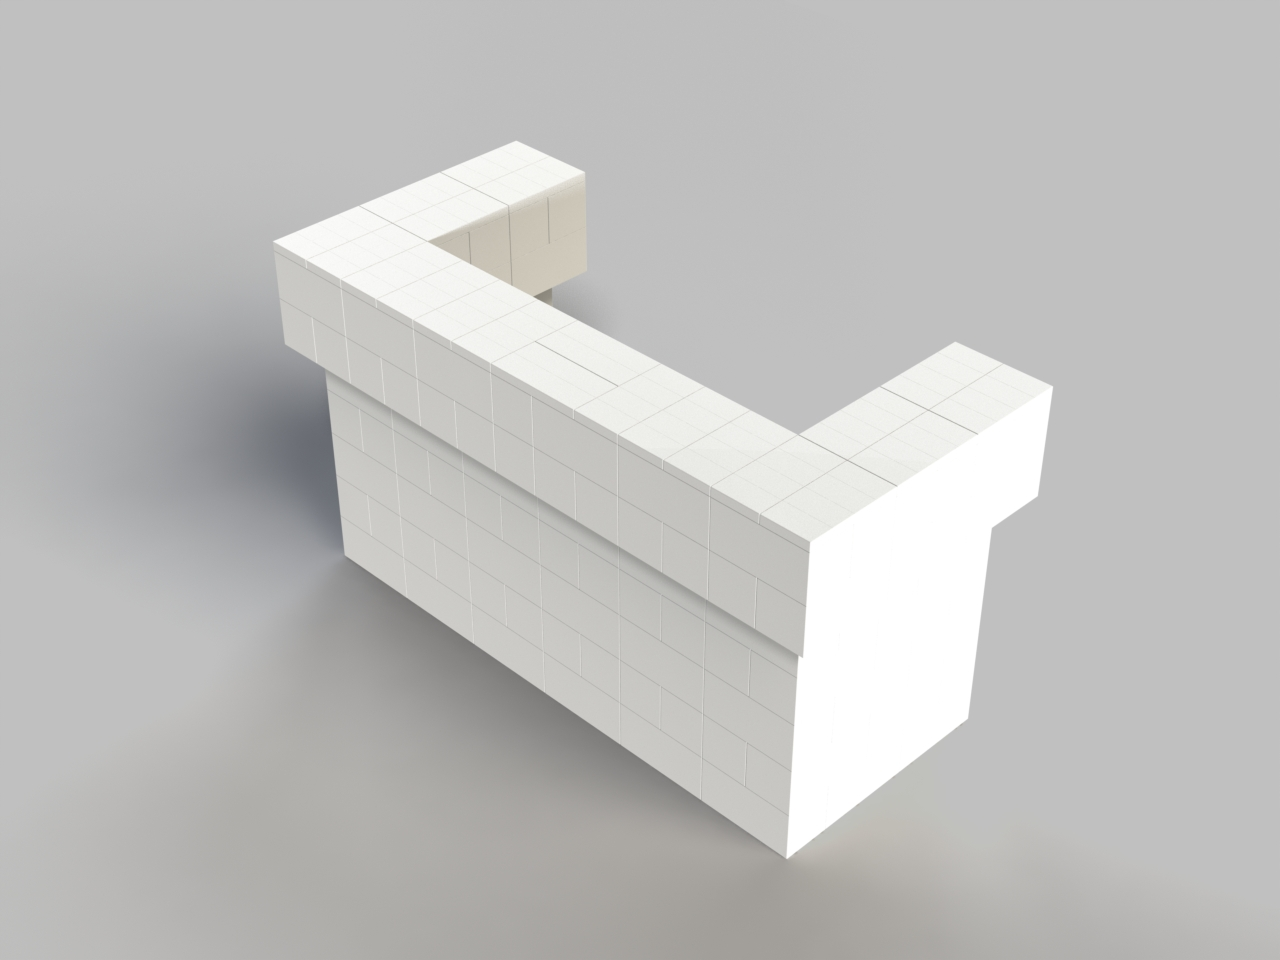 6ft, 2 Layer, All Sides Cantilevered Bar